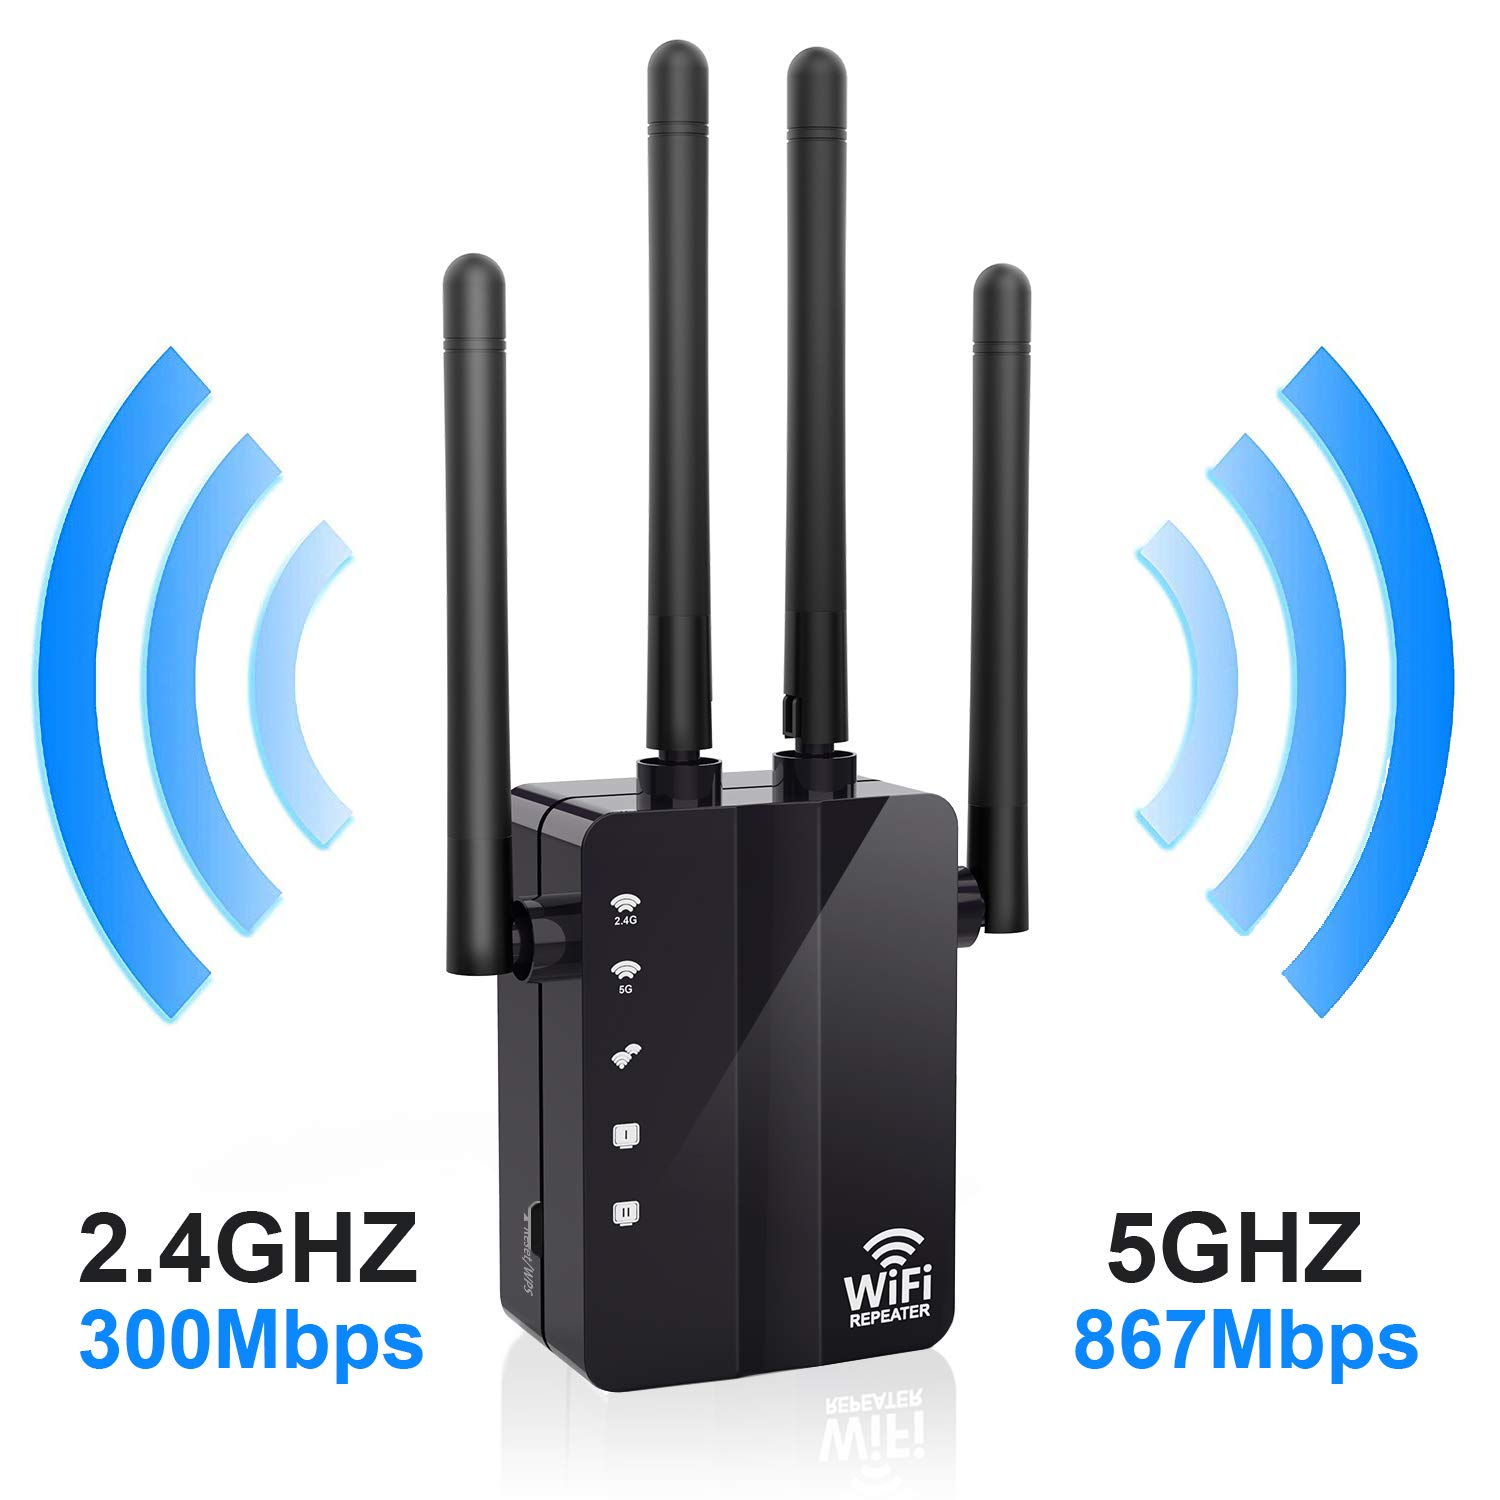 WiFi Range Extender, Anthter 1200Mbps WiFi Repeater with 4 External Antennas, 2 Ethernet Ports, 2.4 & 5GHz Dual Band Signal Booster, 360 Degree Full Coverage WiFi Range Extender Repeater, Easy Set-Up